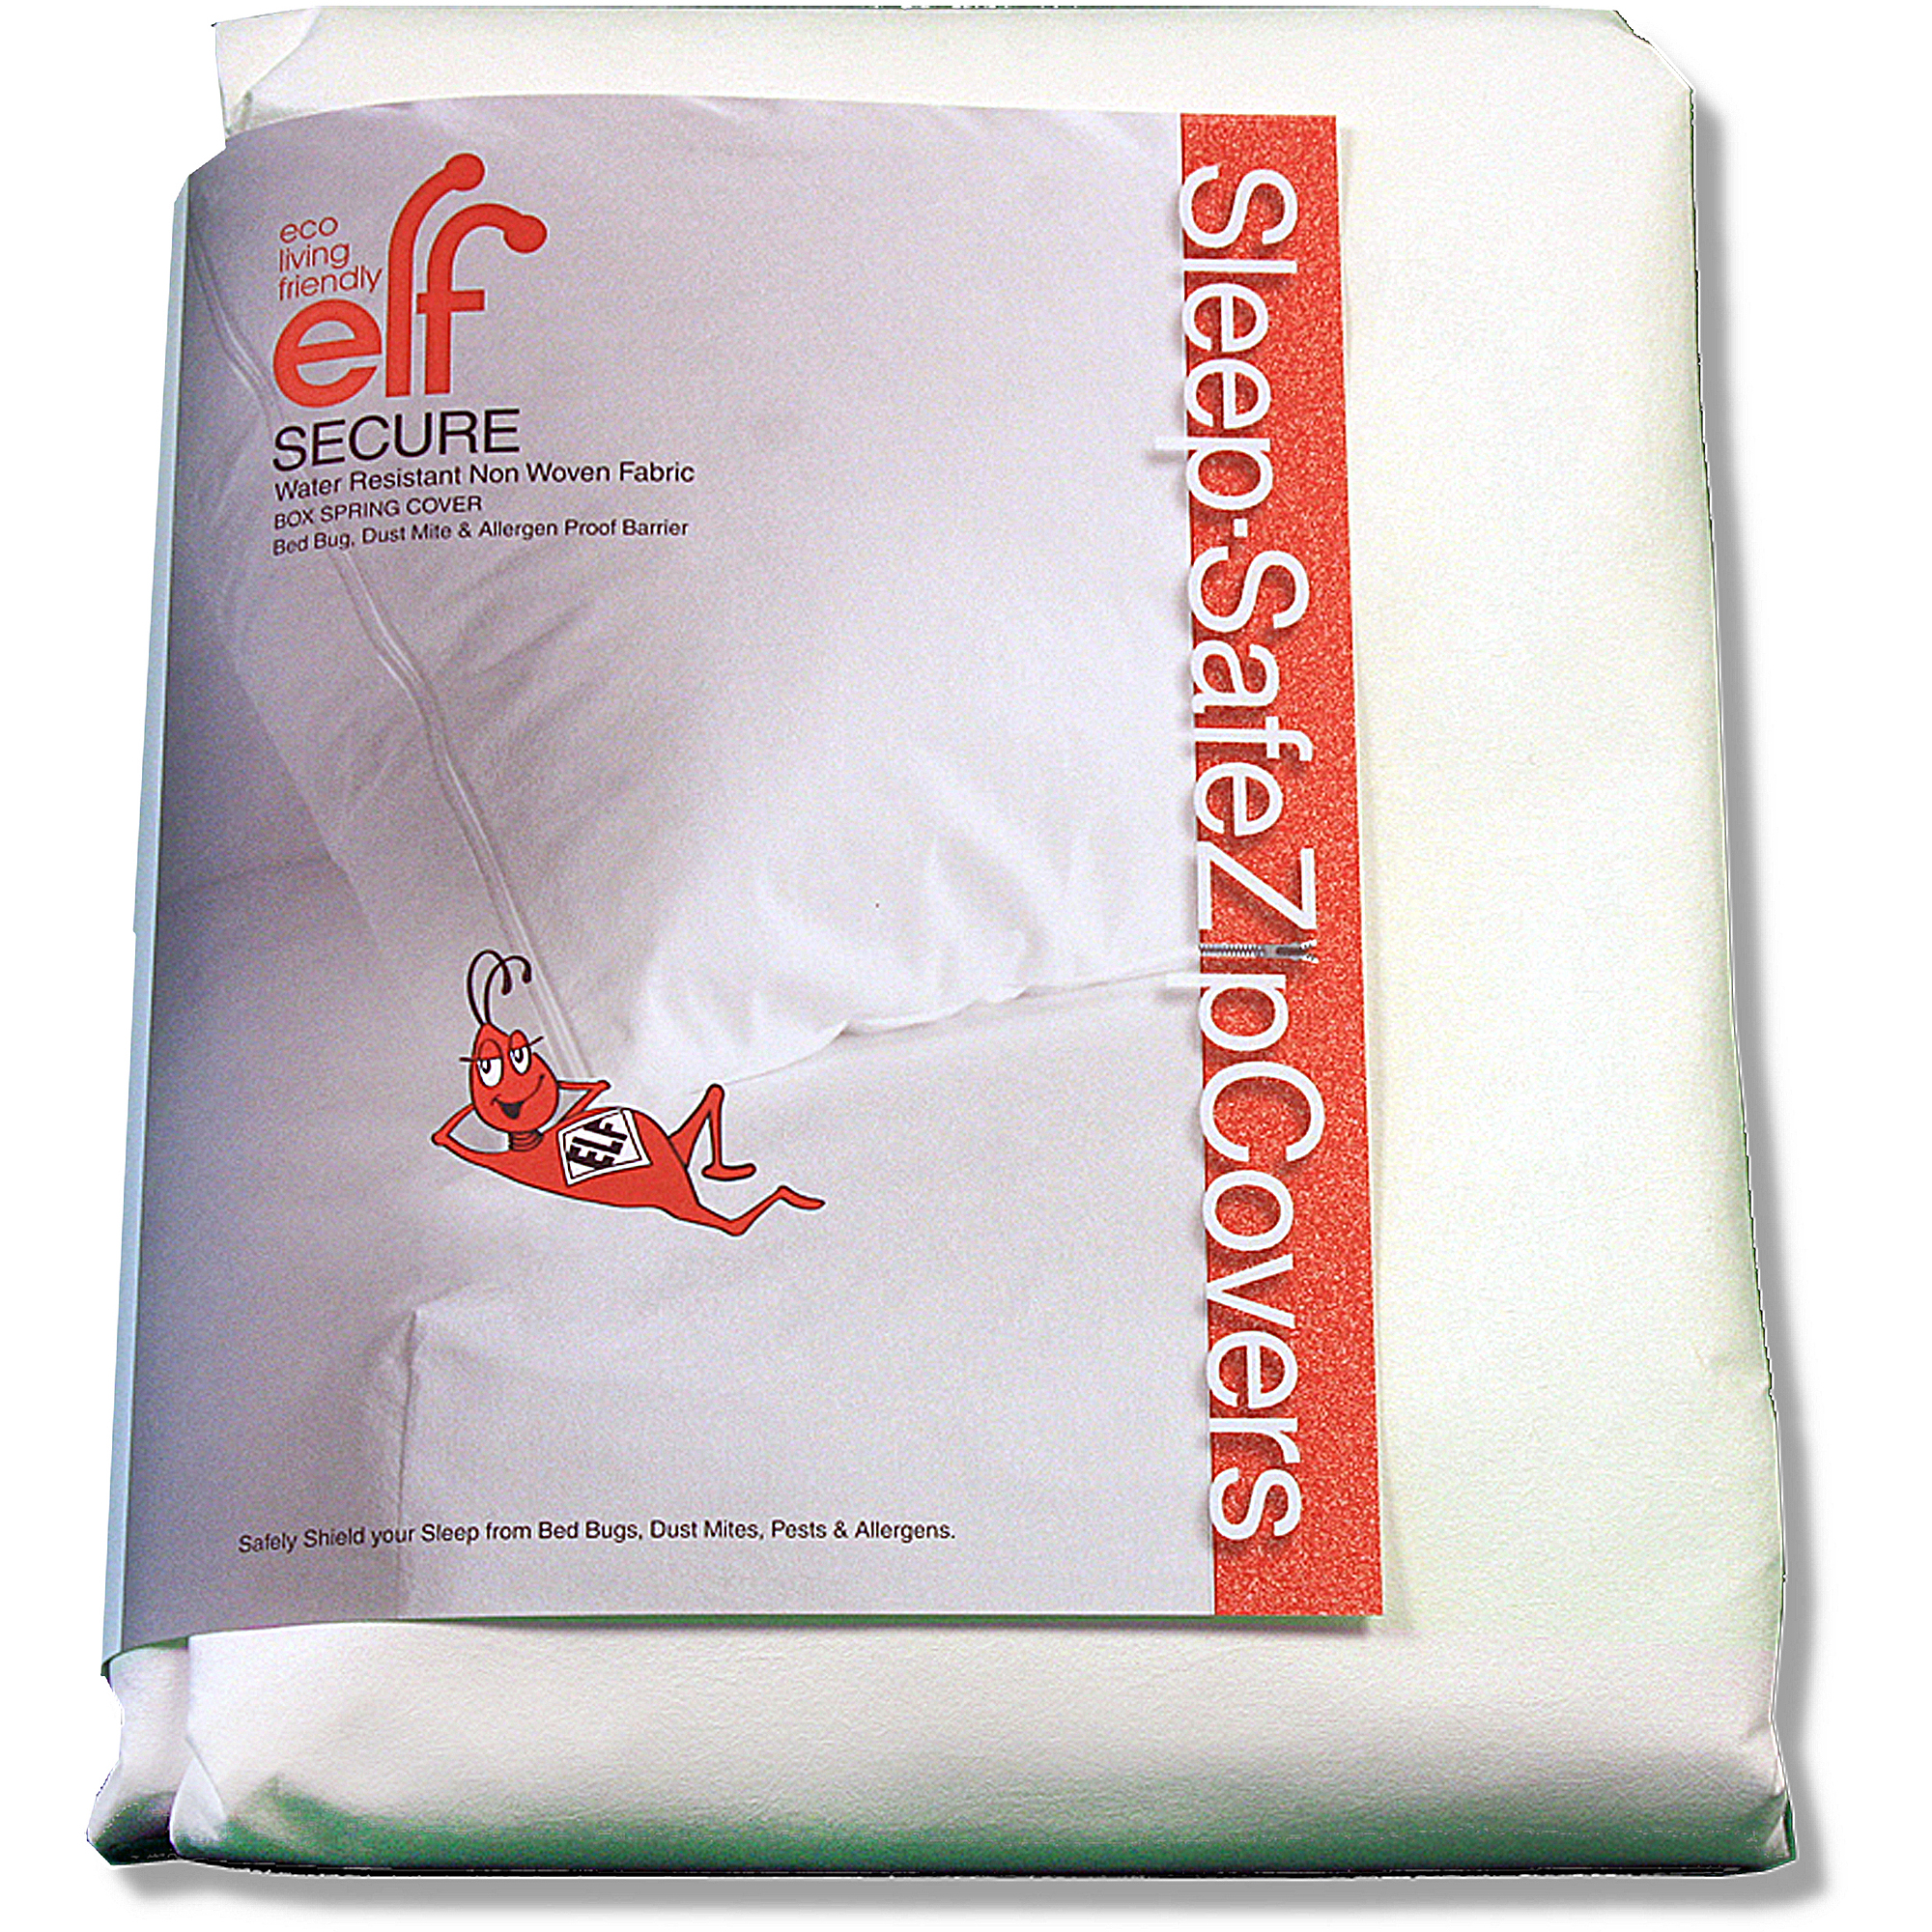 Sleep Safe ZipCover SECURE Box Spring/Mattress Cover